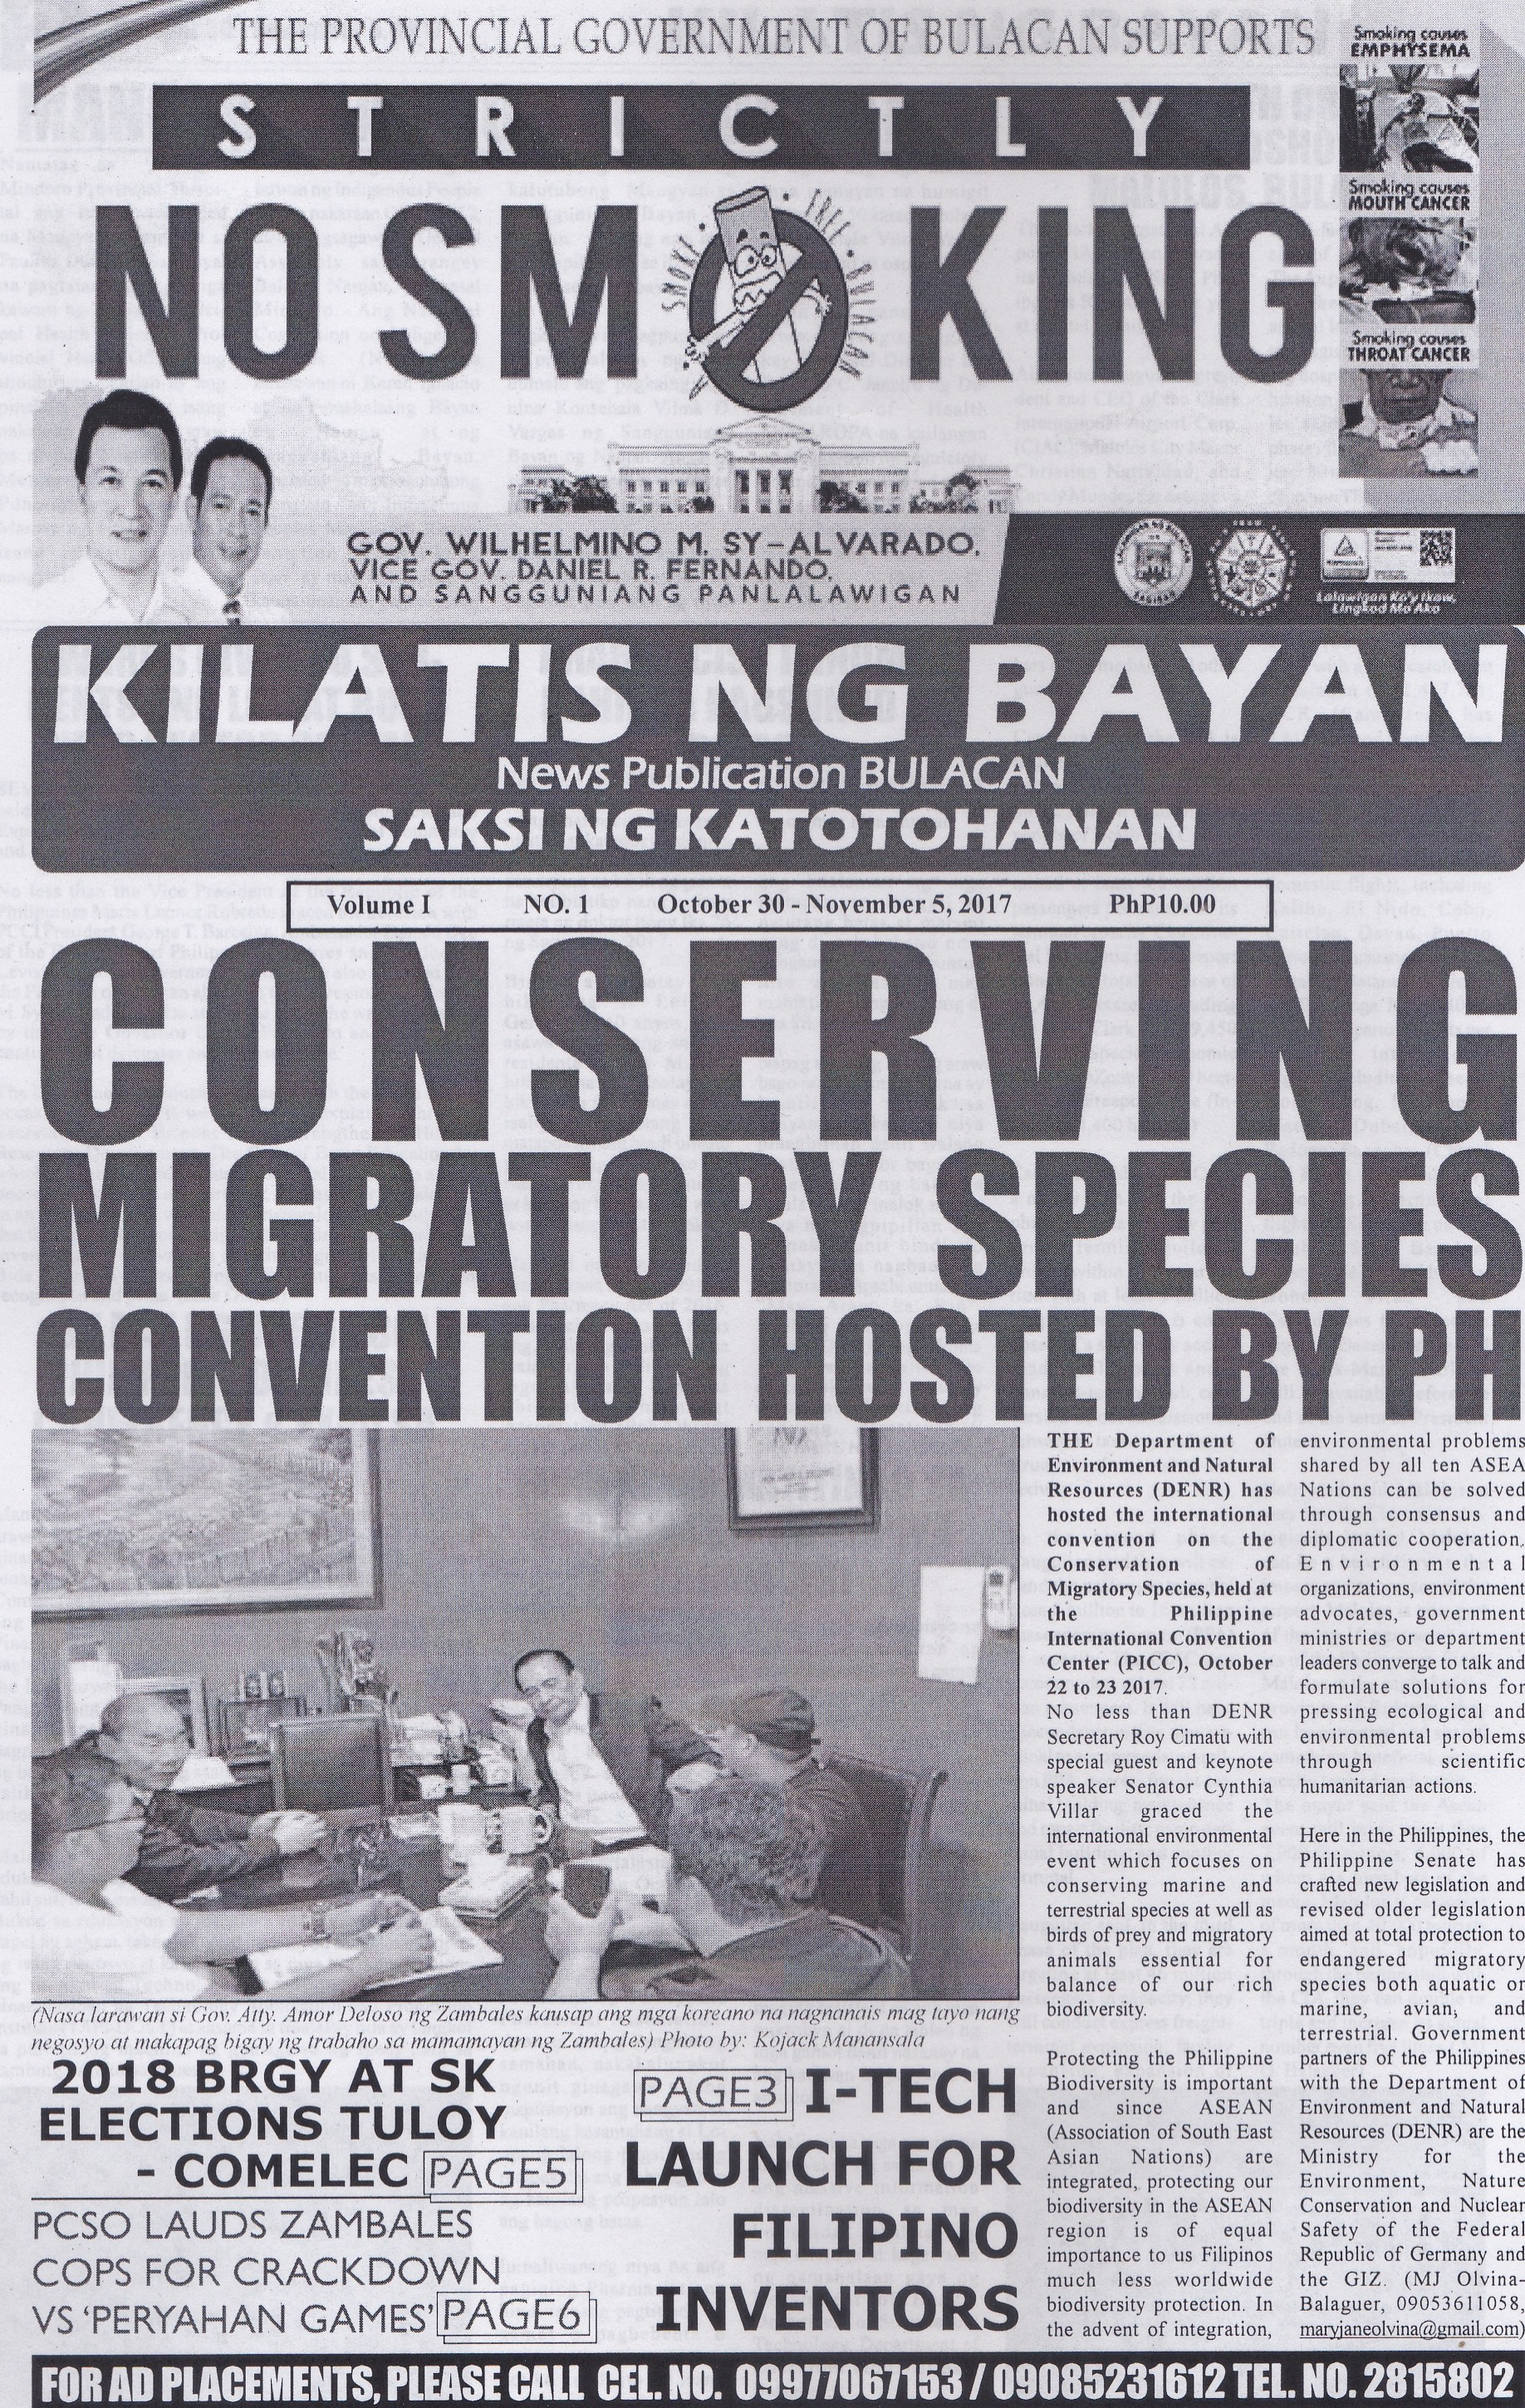 KILATIS ng bayan news publication first issue 103011052017